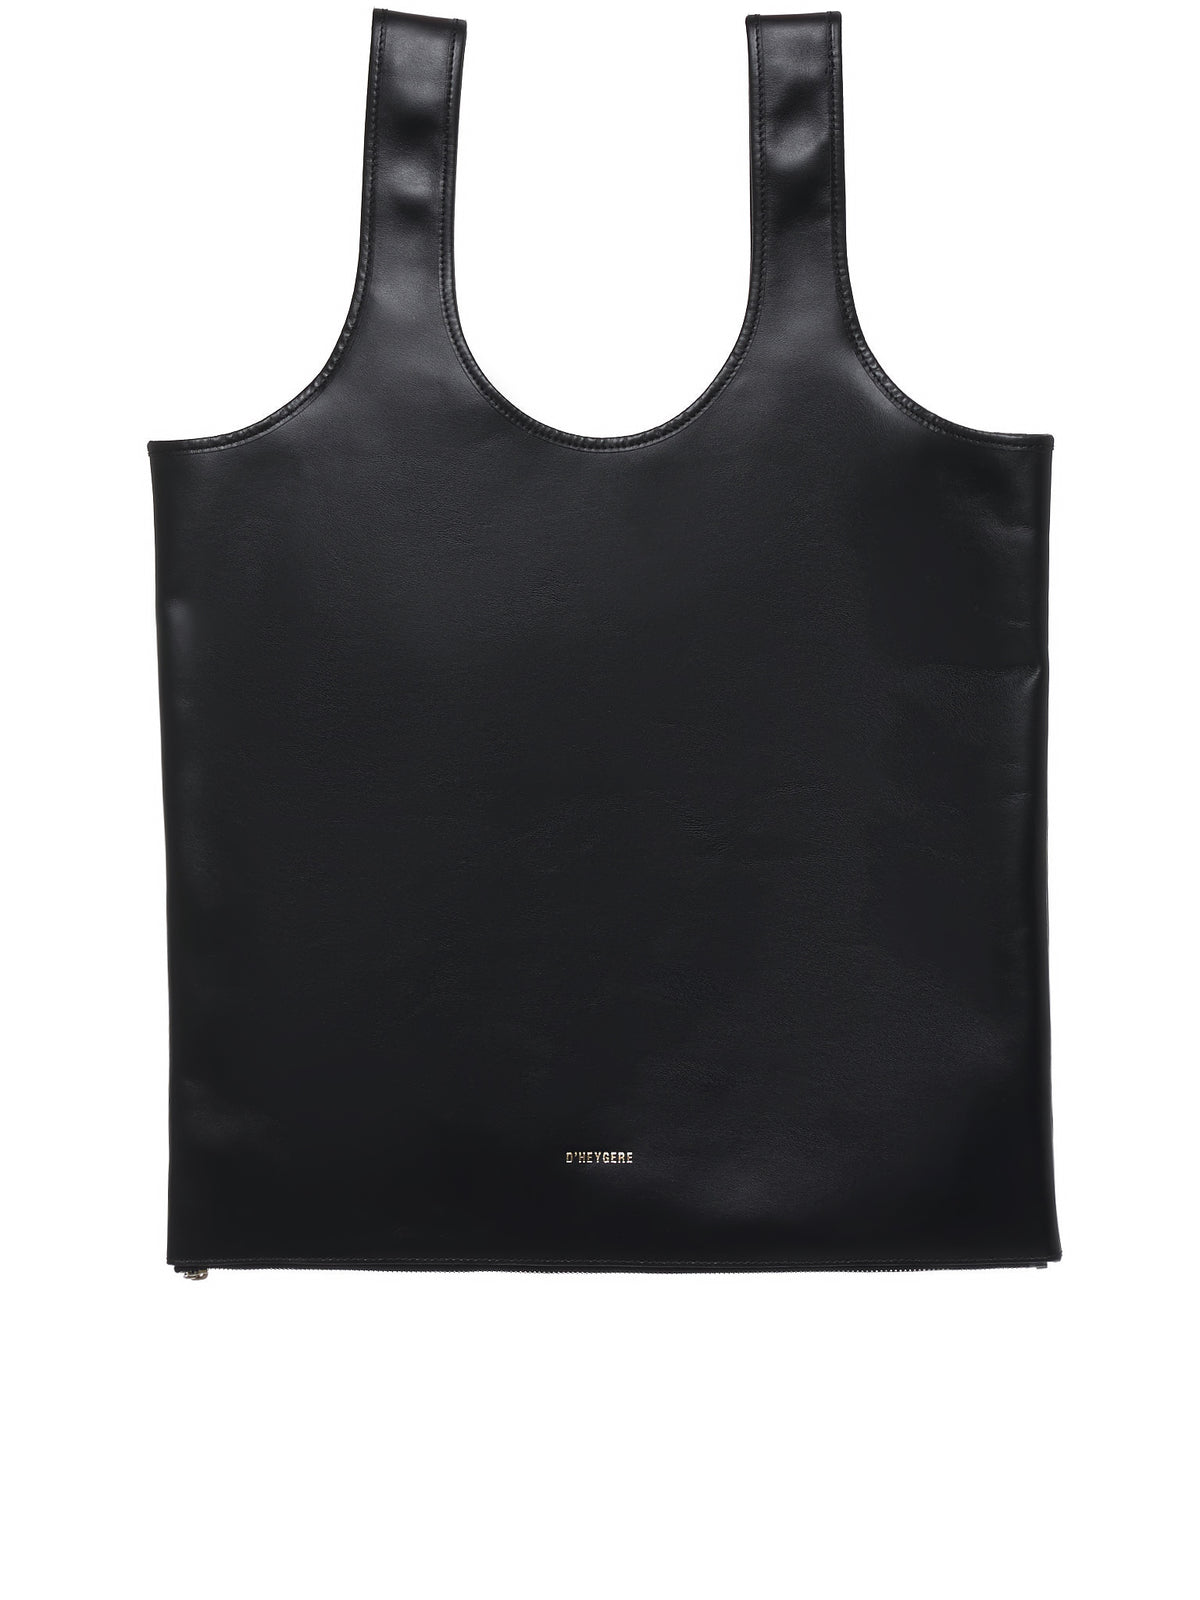 Tank Top Bag (BA01-BLACK)